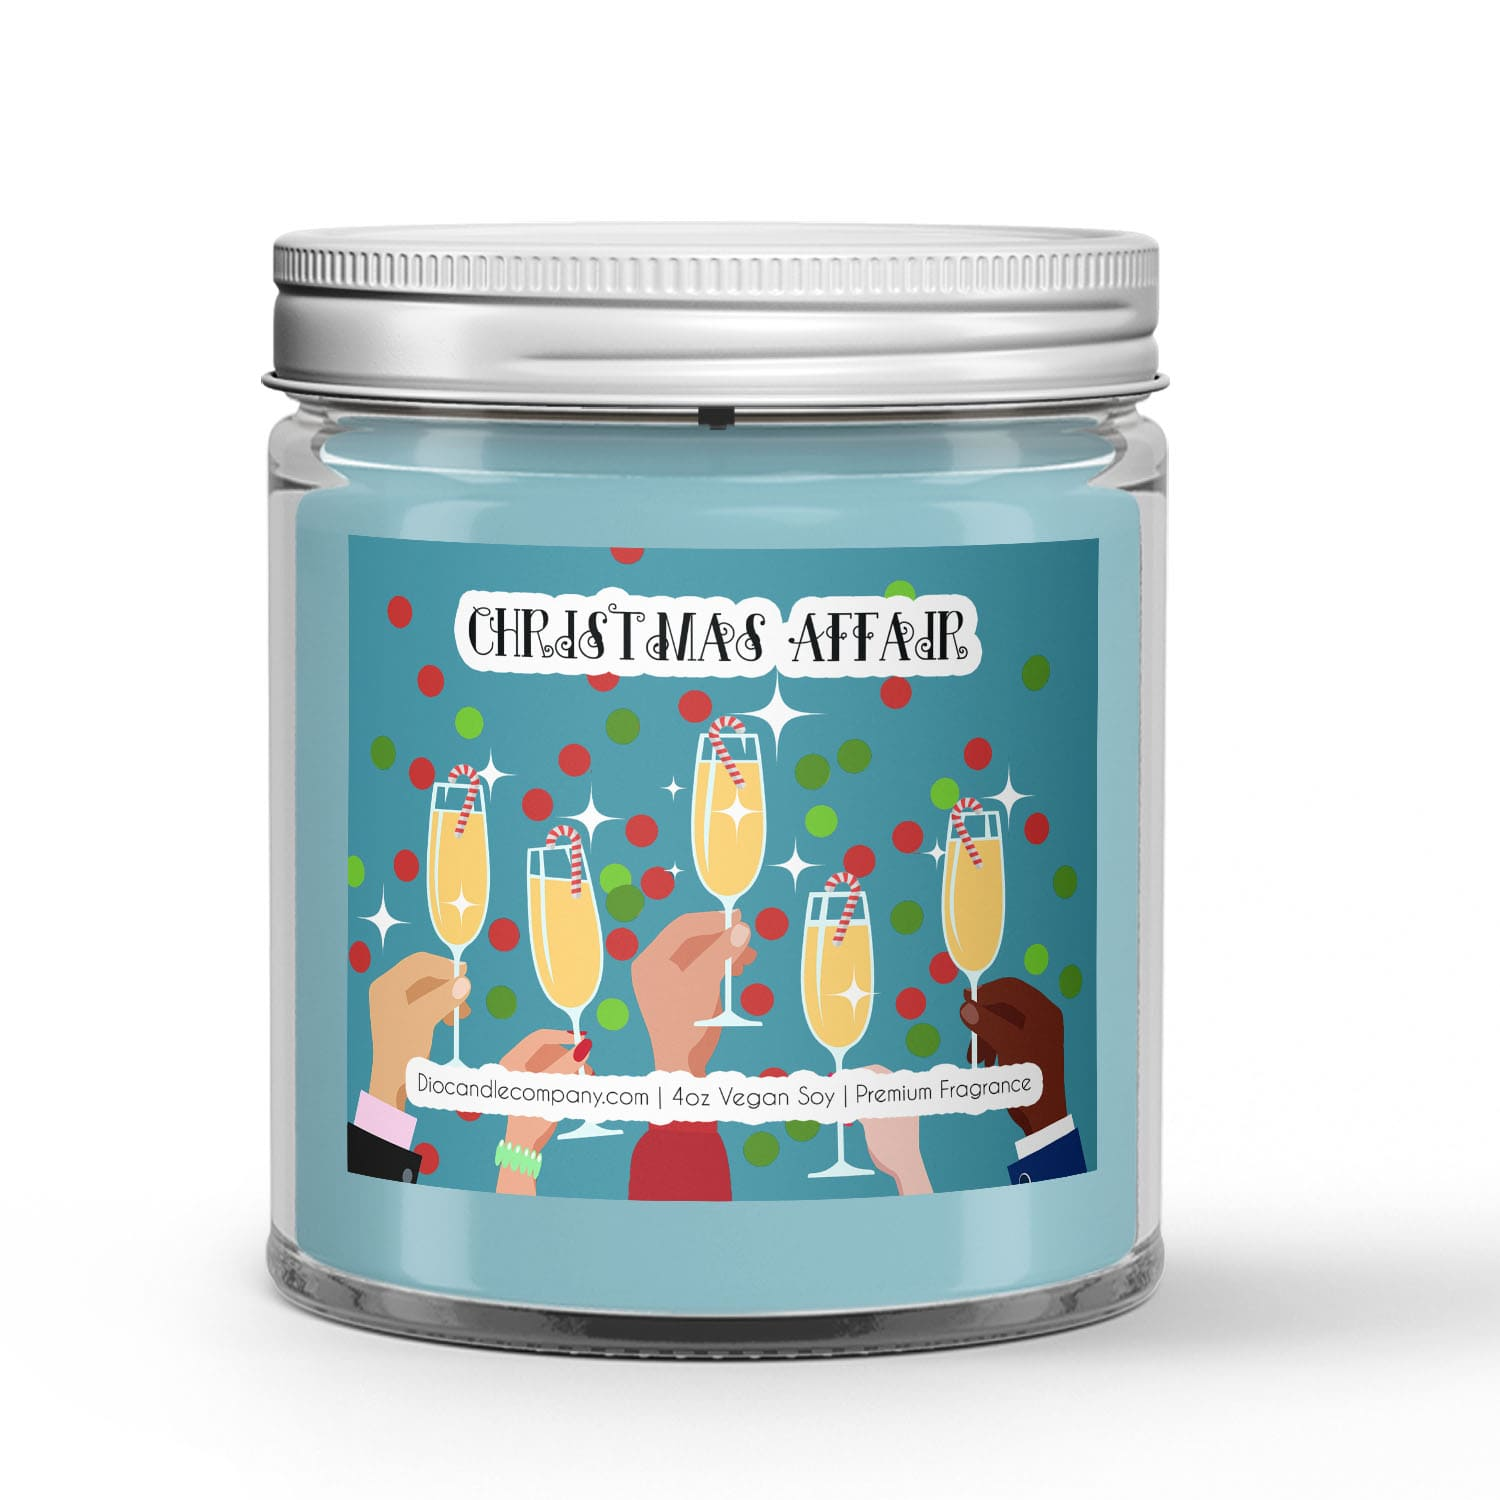 Christmas Affair Candles and Wax Melts